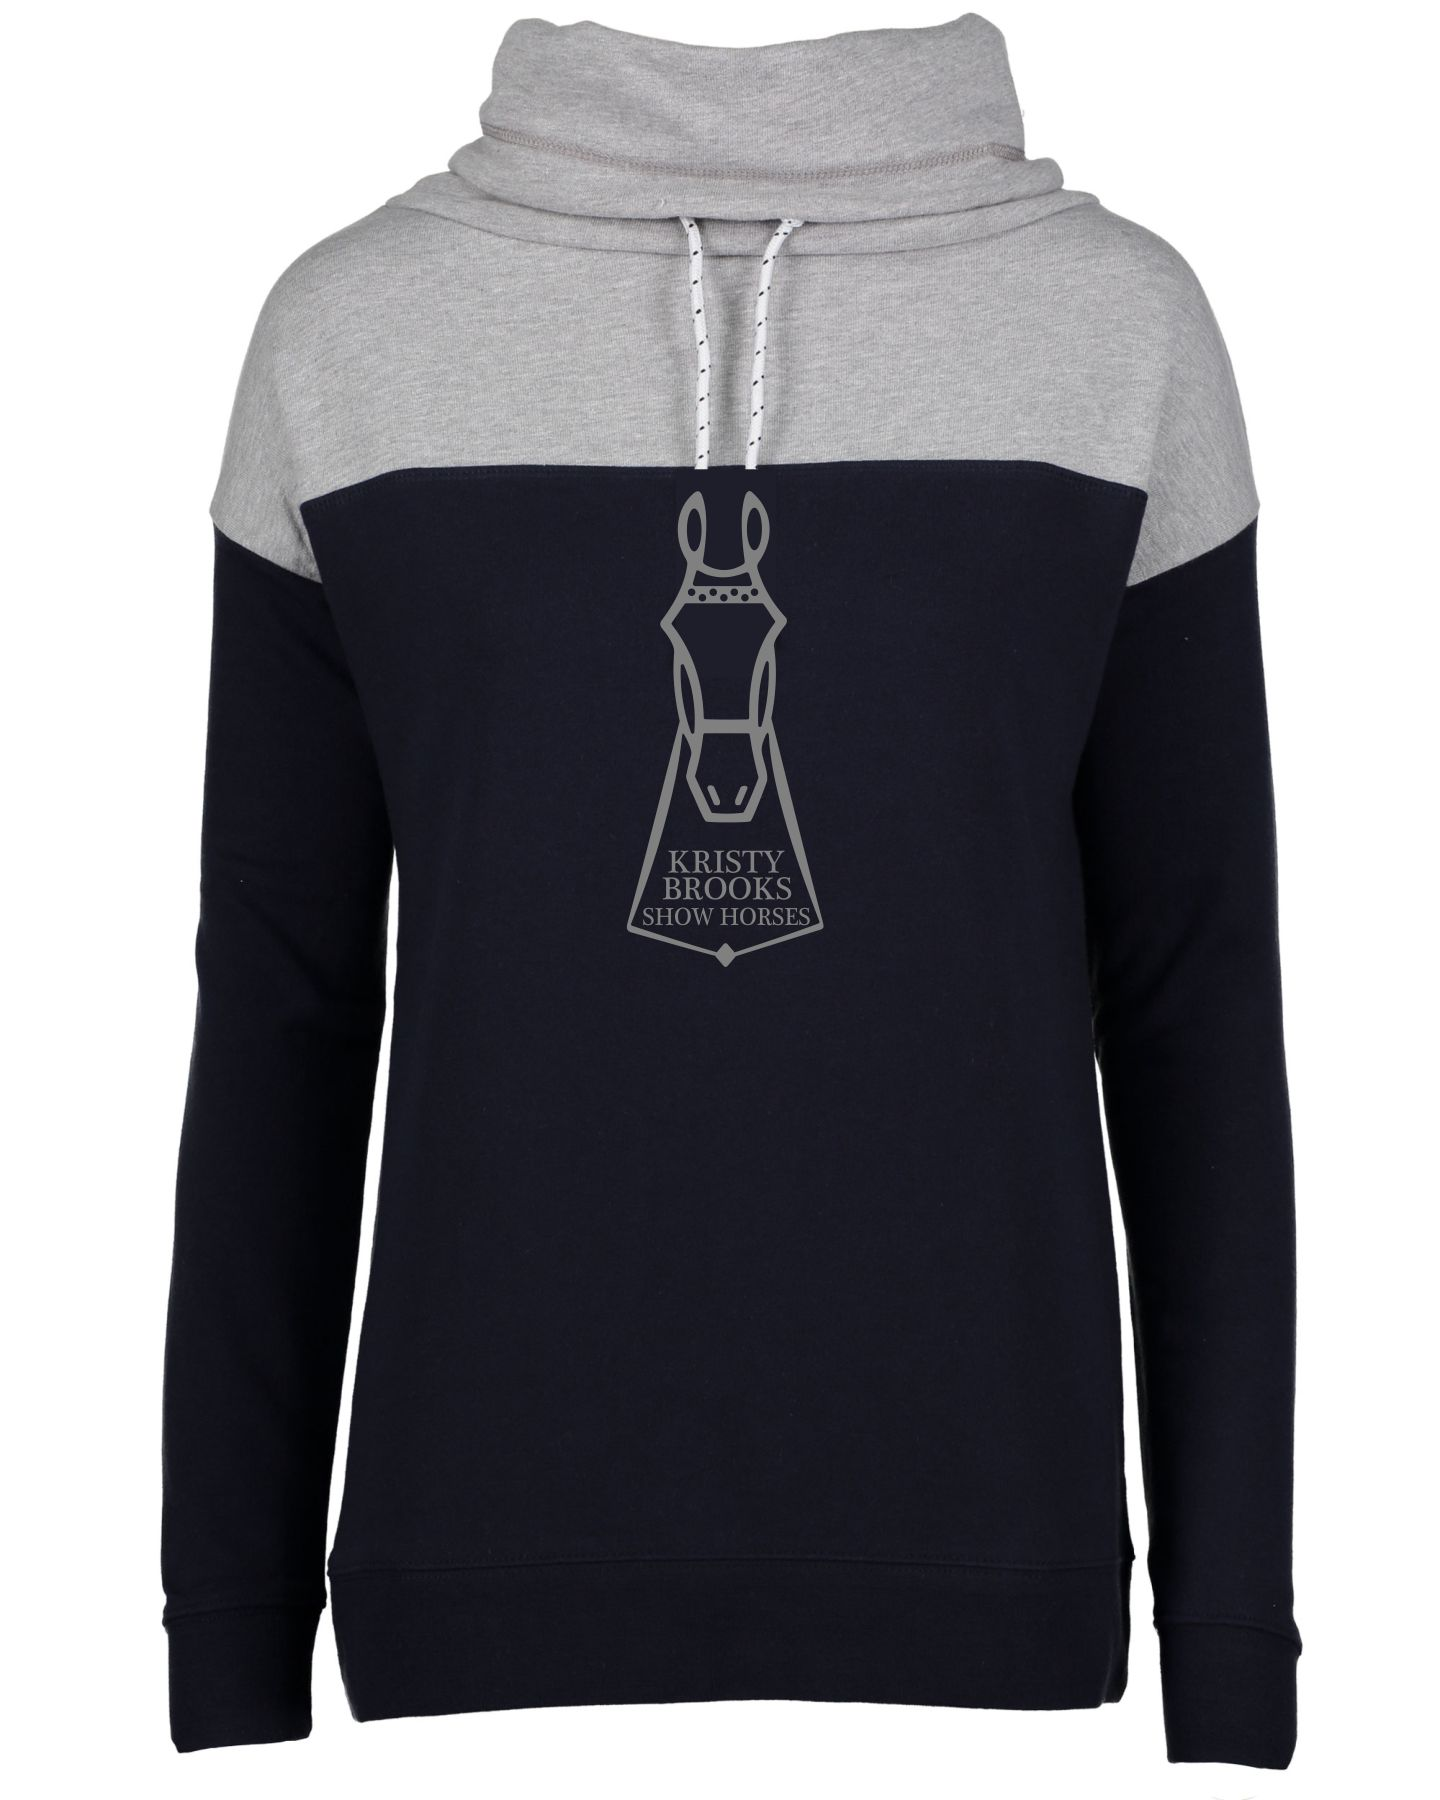 Enza Navy / Charcoal Cowl Neck Sweatshirt (Kristy Brooks)